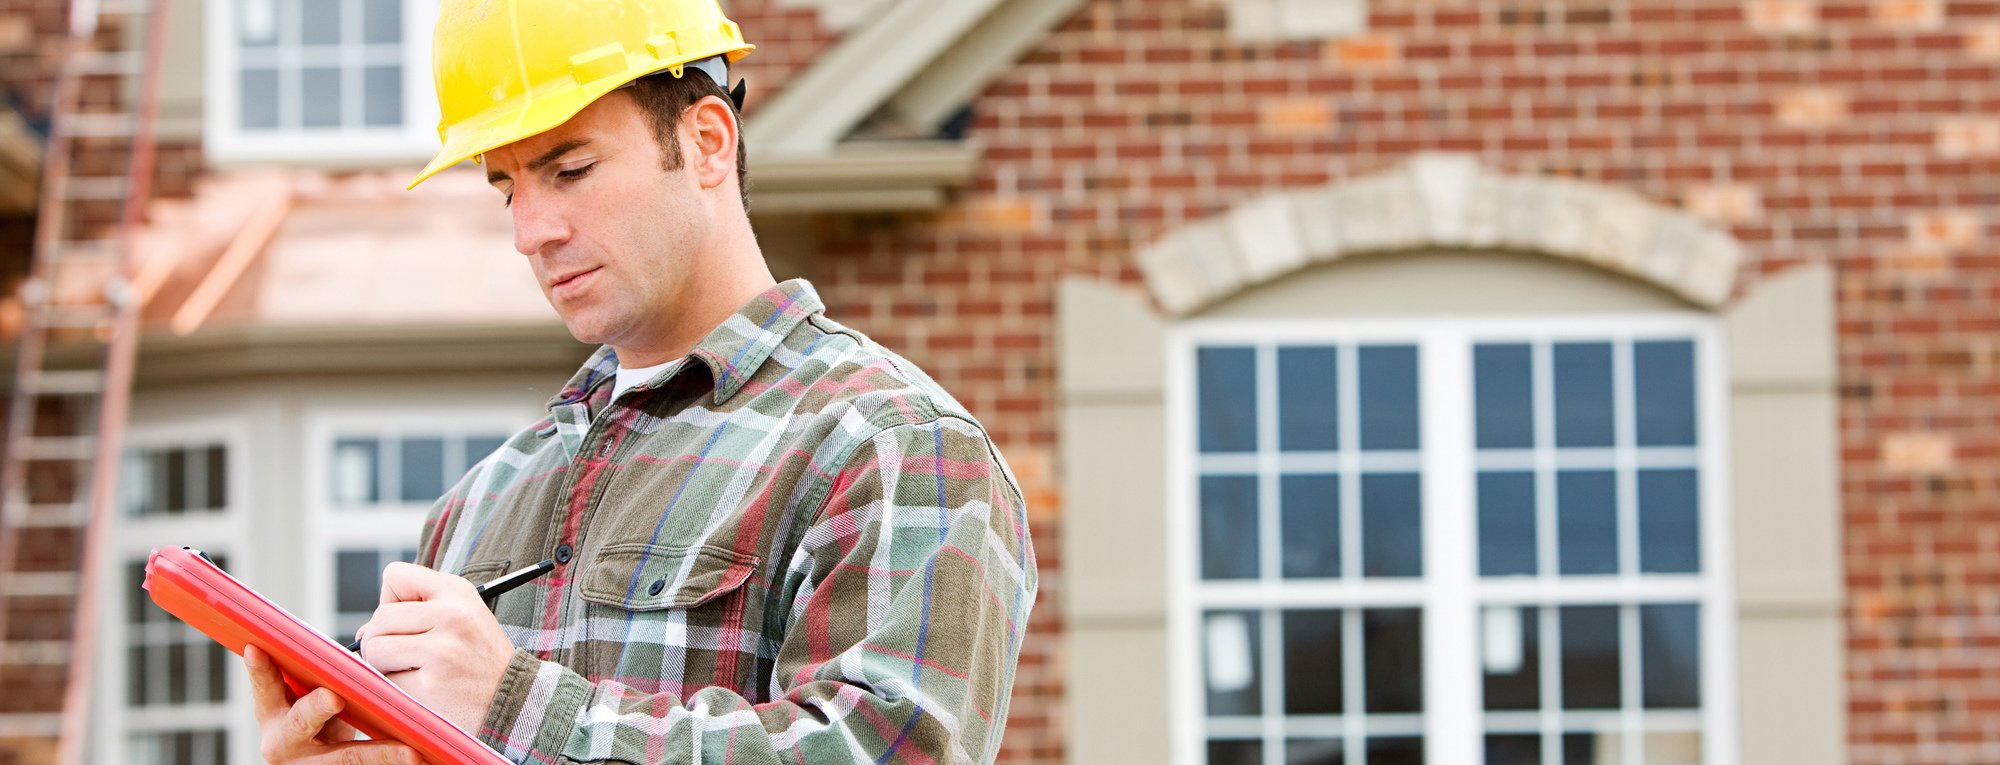 Dependable drywall service provider in Rochester, NY